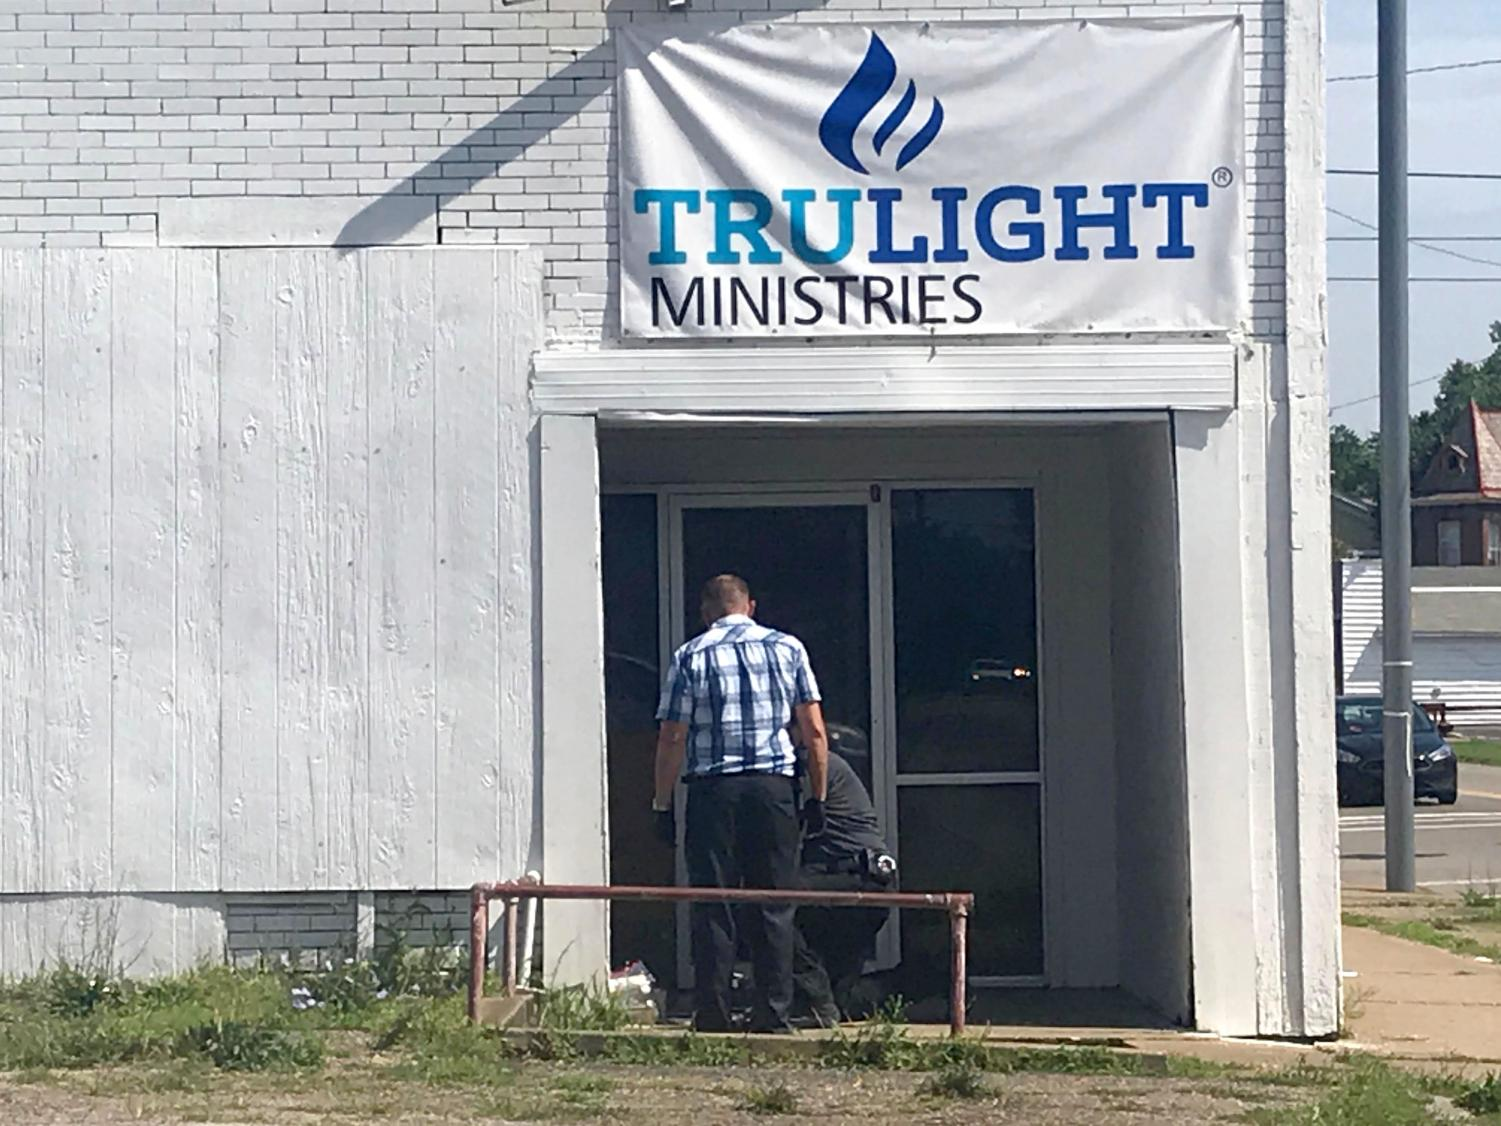 Police detectives investigate fatal stabbing. The detectives were seen collecting evidence in the doorway of Trulight Ministries on Putnam Avenue.